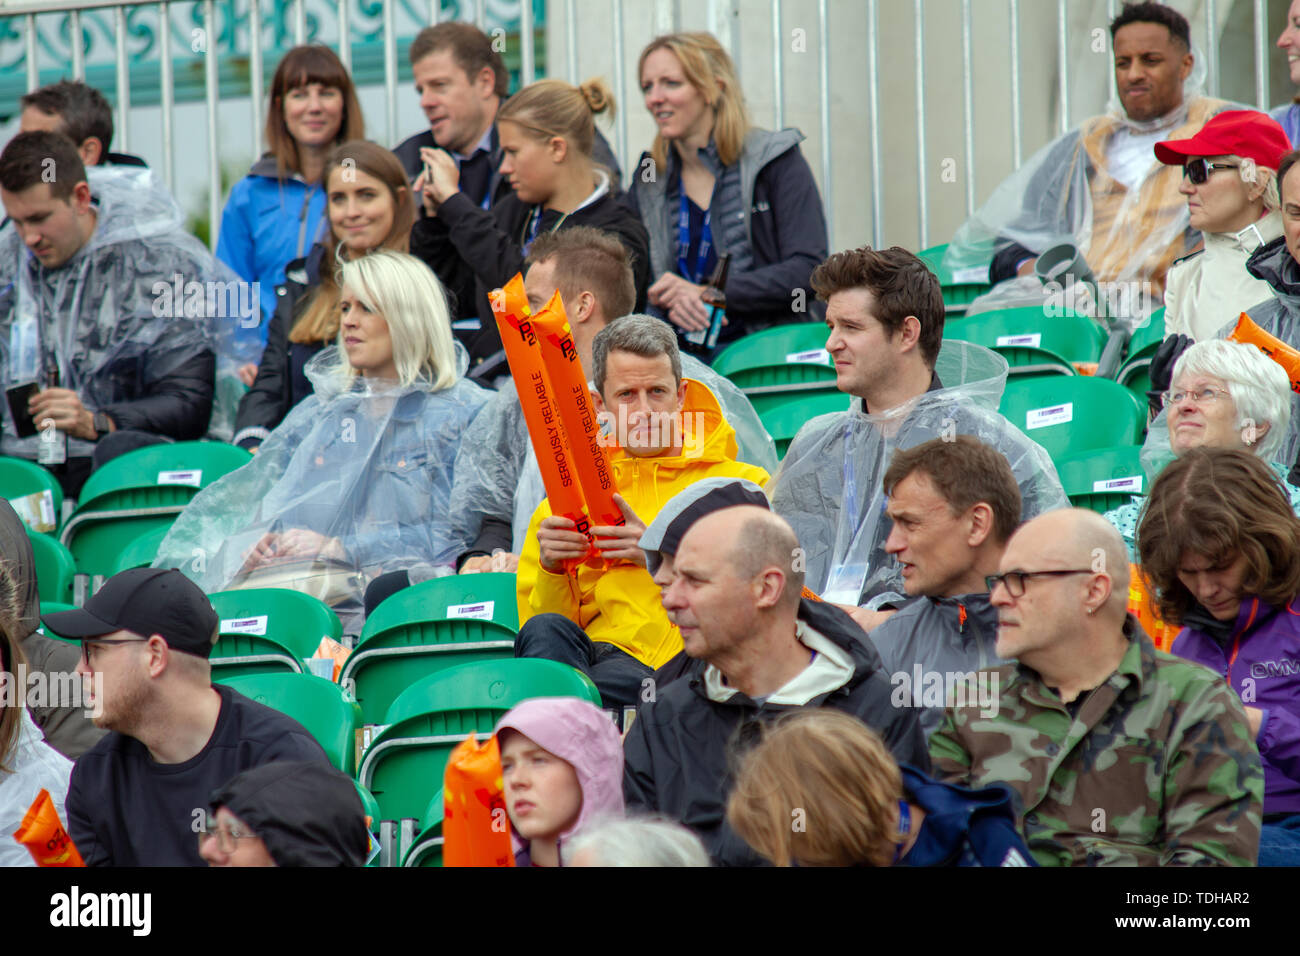 Nottingham, UK. 15th June, 2019. Despite heavy rain, spectators turned out to watch the 2019 Accenture World Triathlon Mixed Relay (Duathlon) in Nottingham, Credit: SOPA Images Limited/Alamy Live News - Stock Image